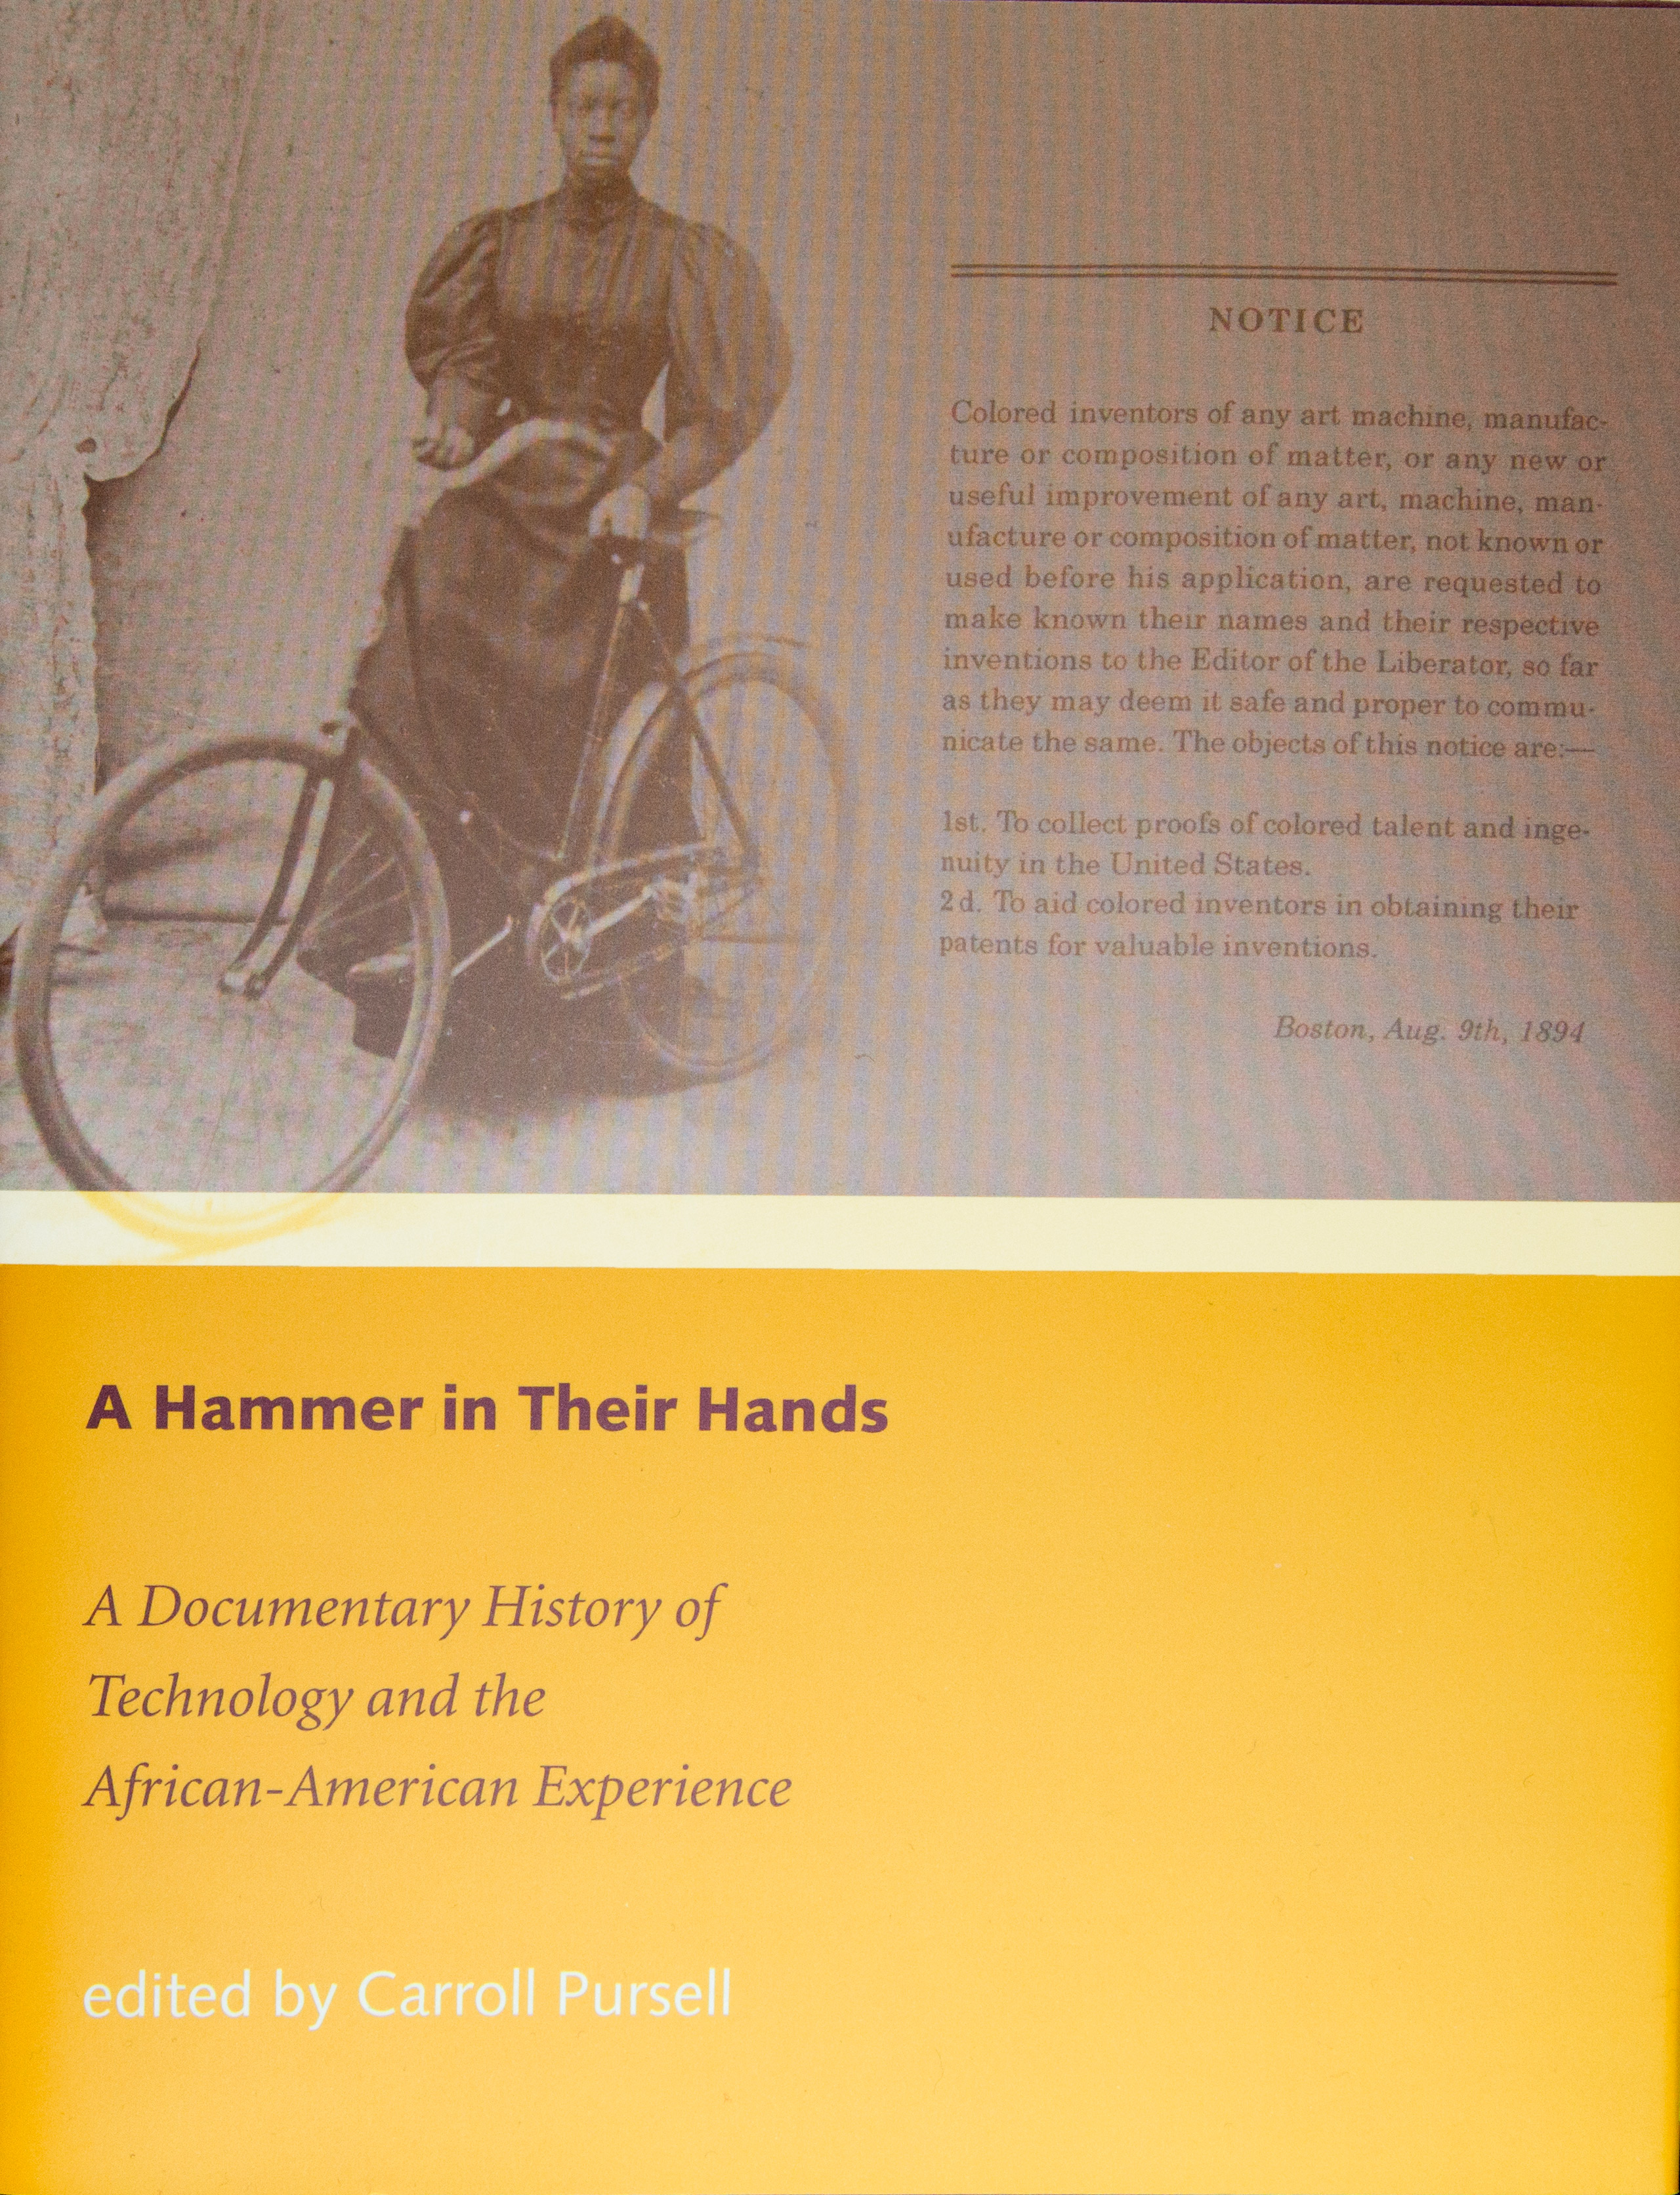 Image of book cover - A Hammer in Their Hands